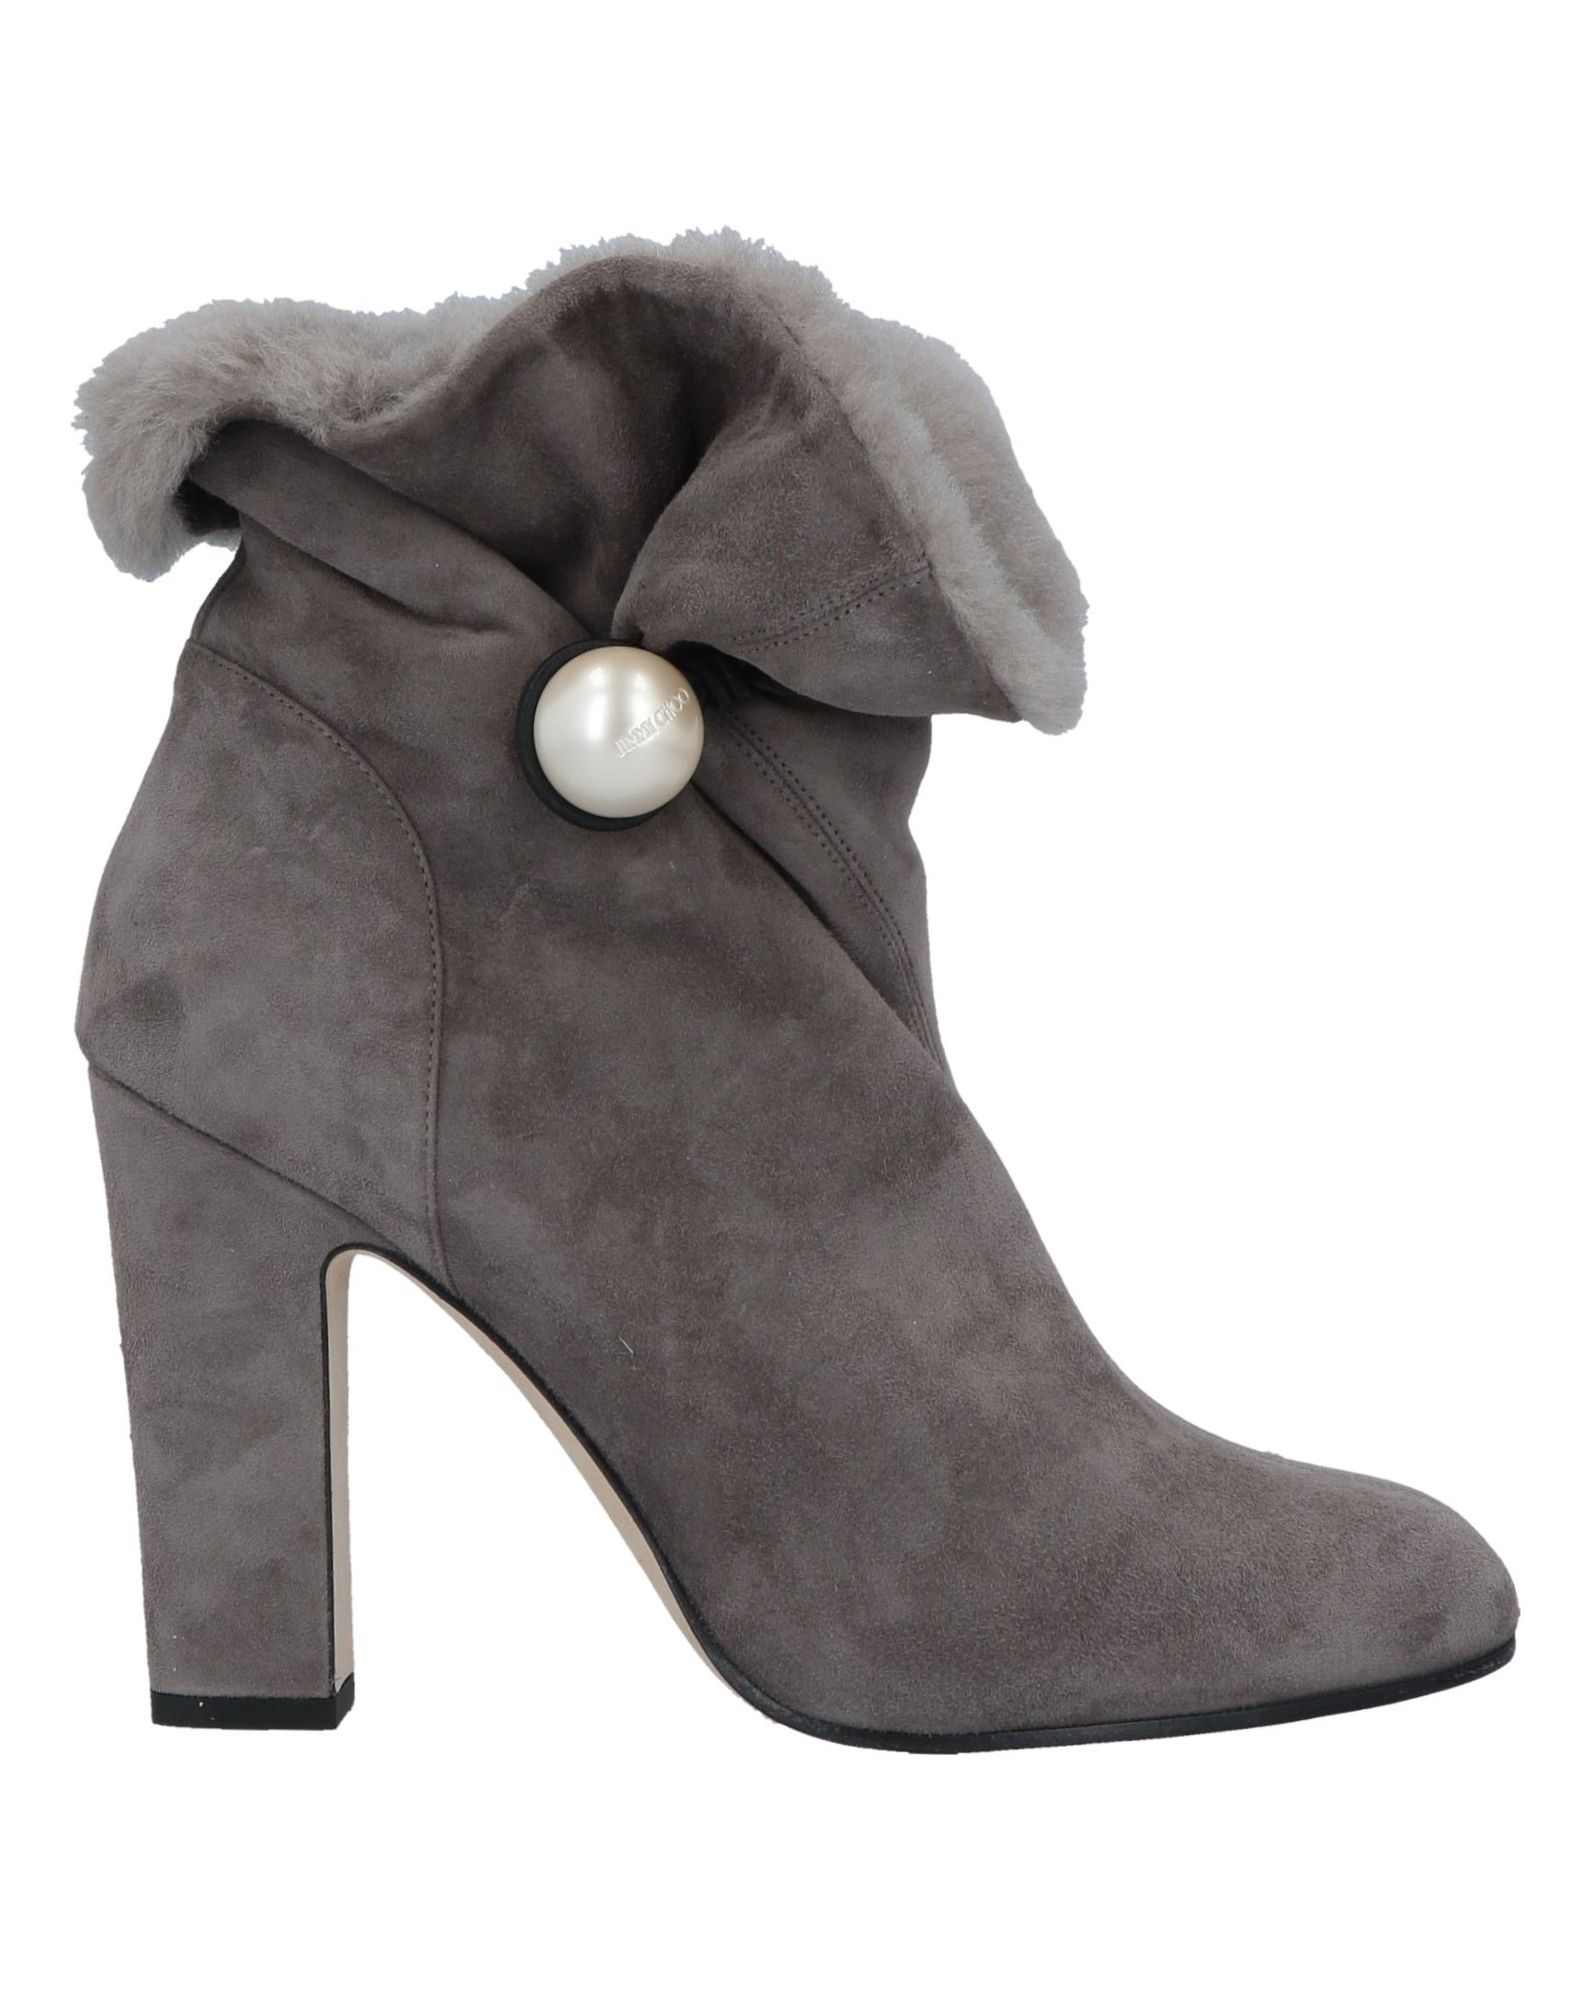 edfa97a6b086 Jimmy Choo Bethanie 85 Shearling-Lined Suede Ankle Boots In Dark Gray